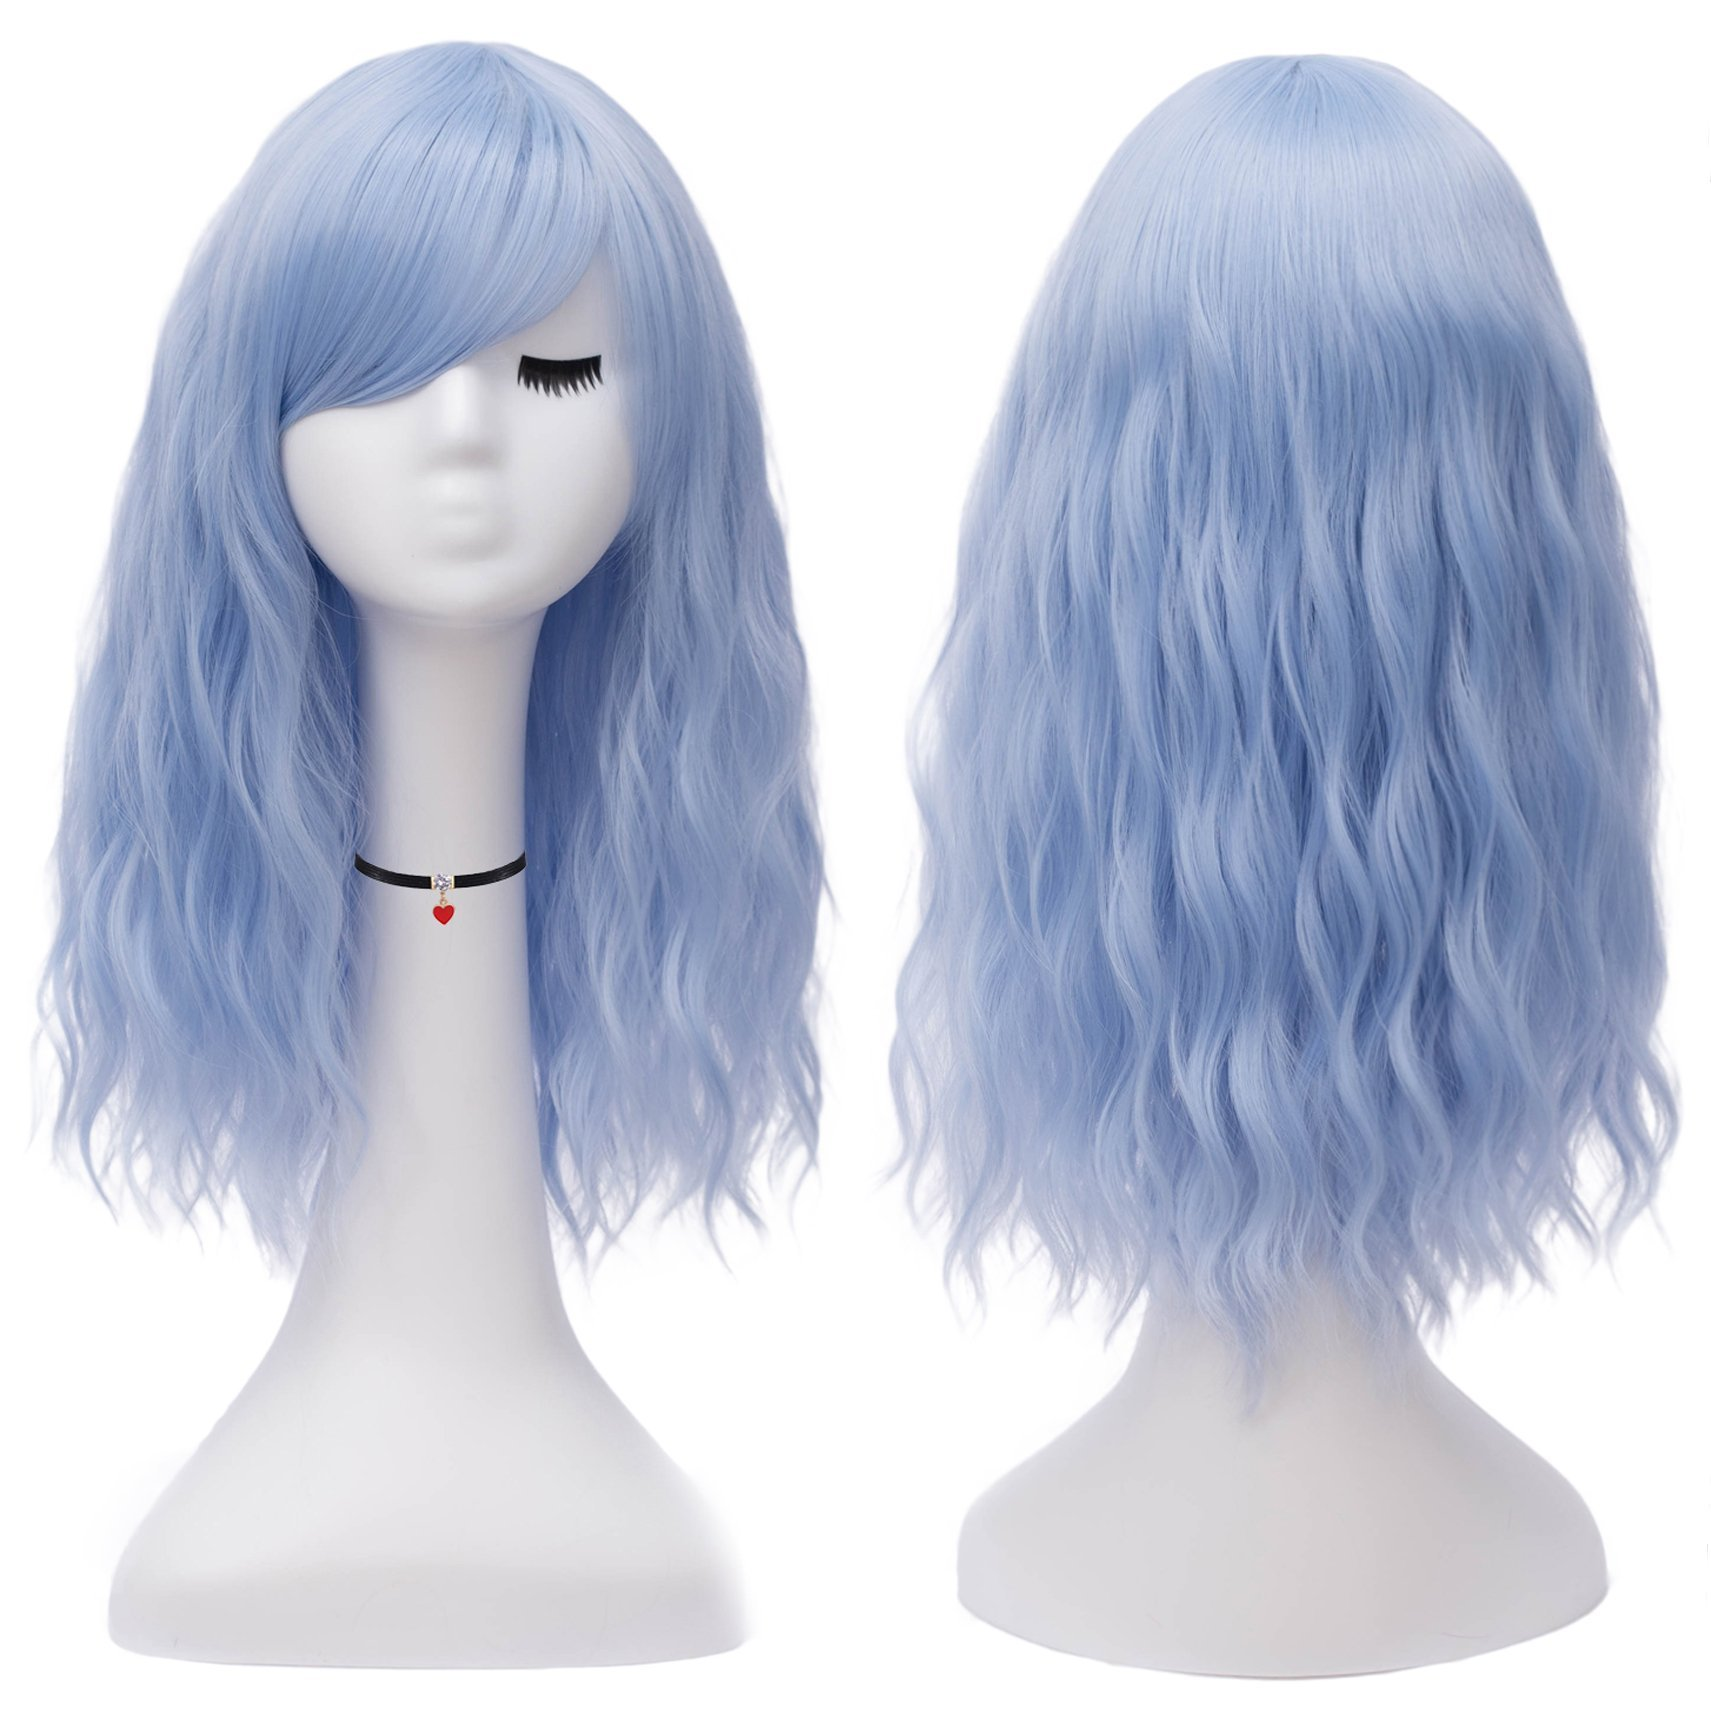 Mildiso Short Blue Hair Wigs for Women Full Curly Cosplay Wigs with Bangs Heat Resistant Synthetic Wigs (Light Blue) M050BL